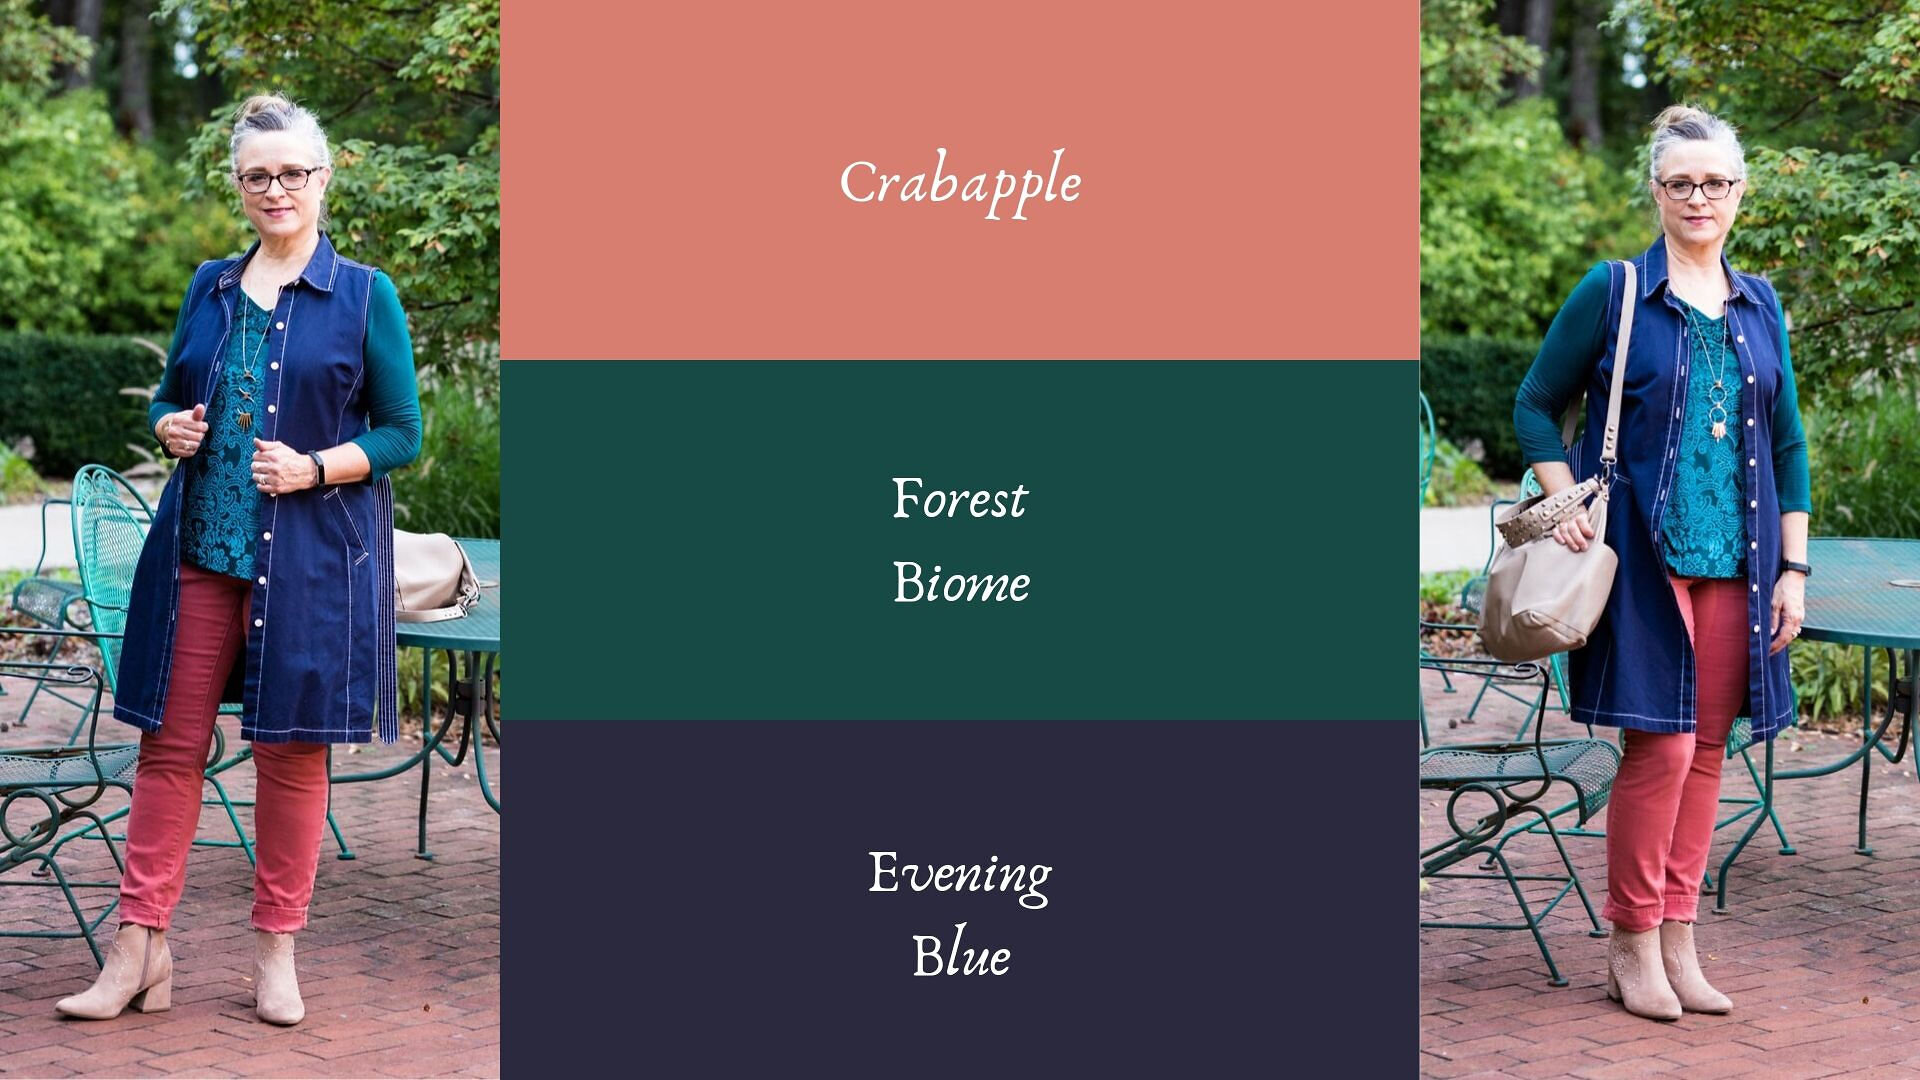 Pantone - Autumn/Winter - Crabapple and Forest Biome